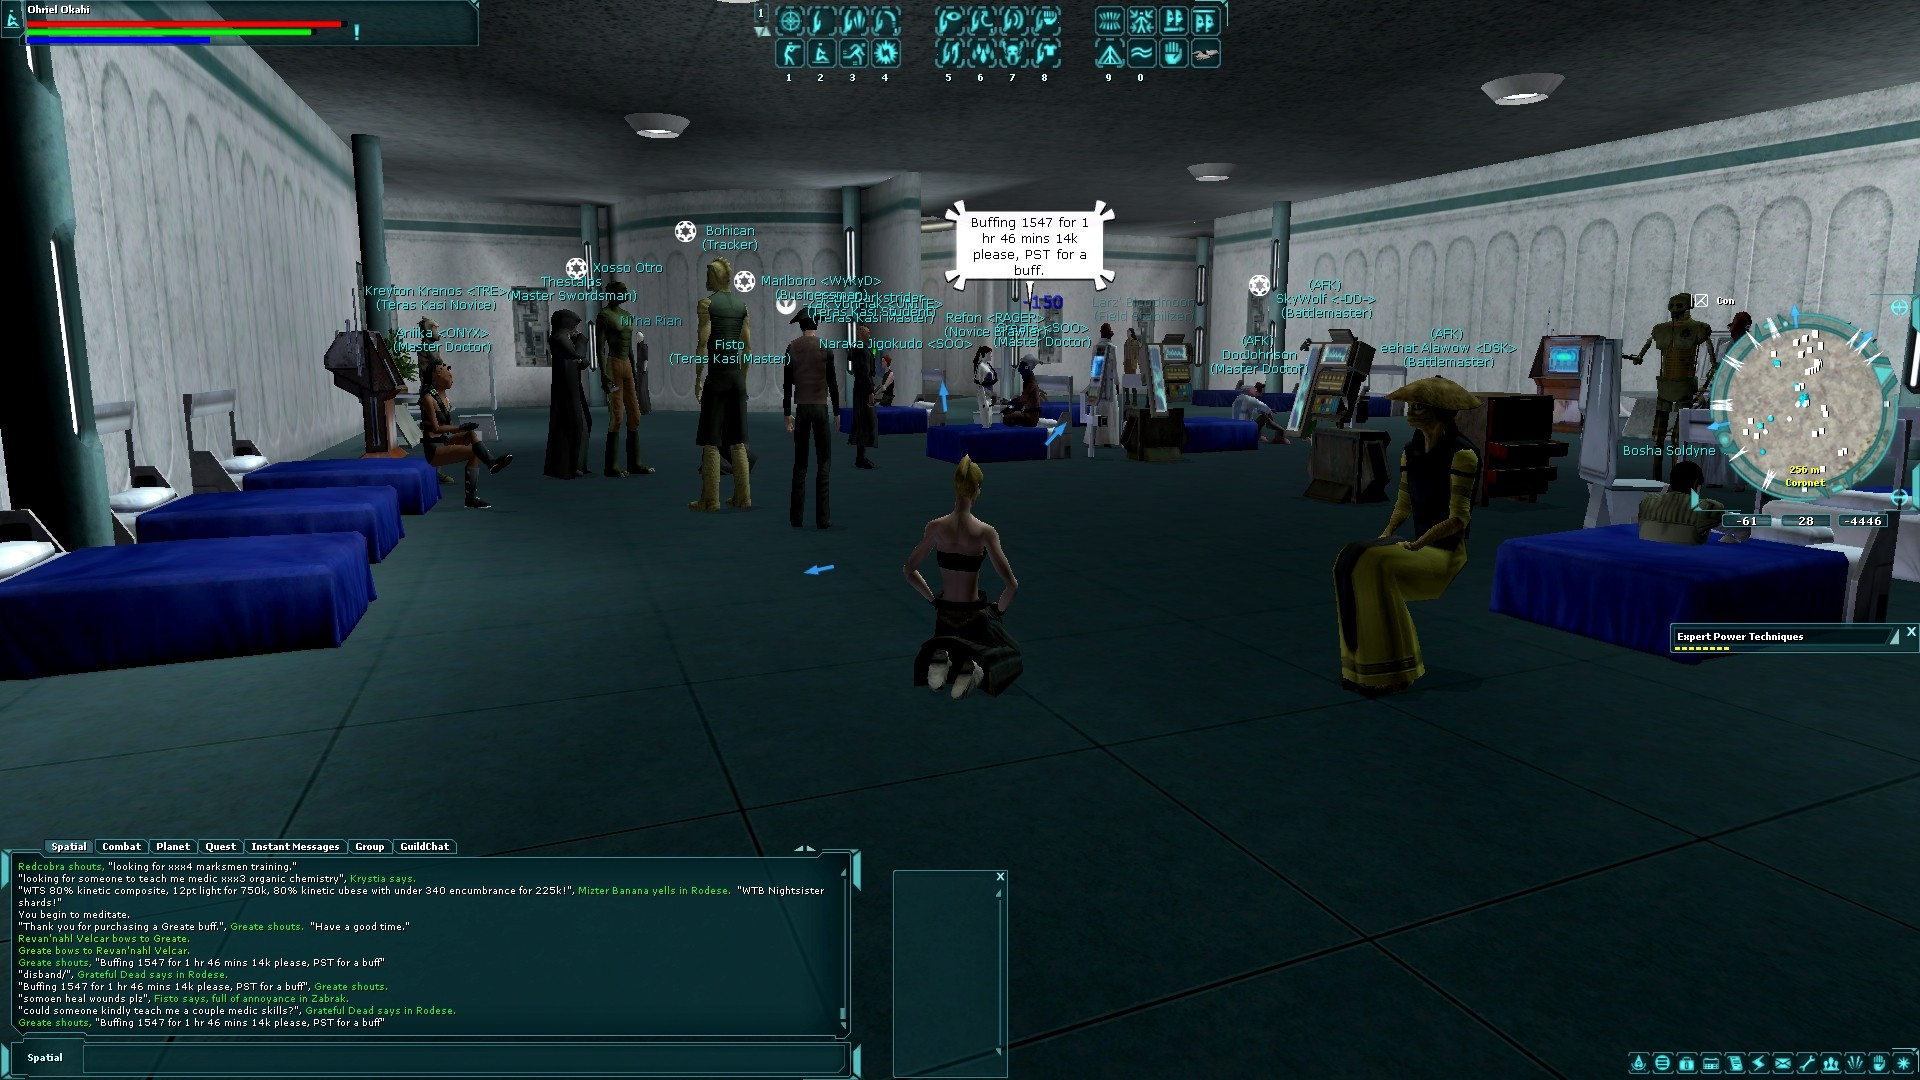 Star Wars Galaxies - SWG precu server...